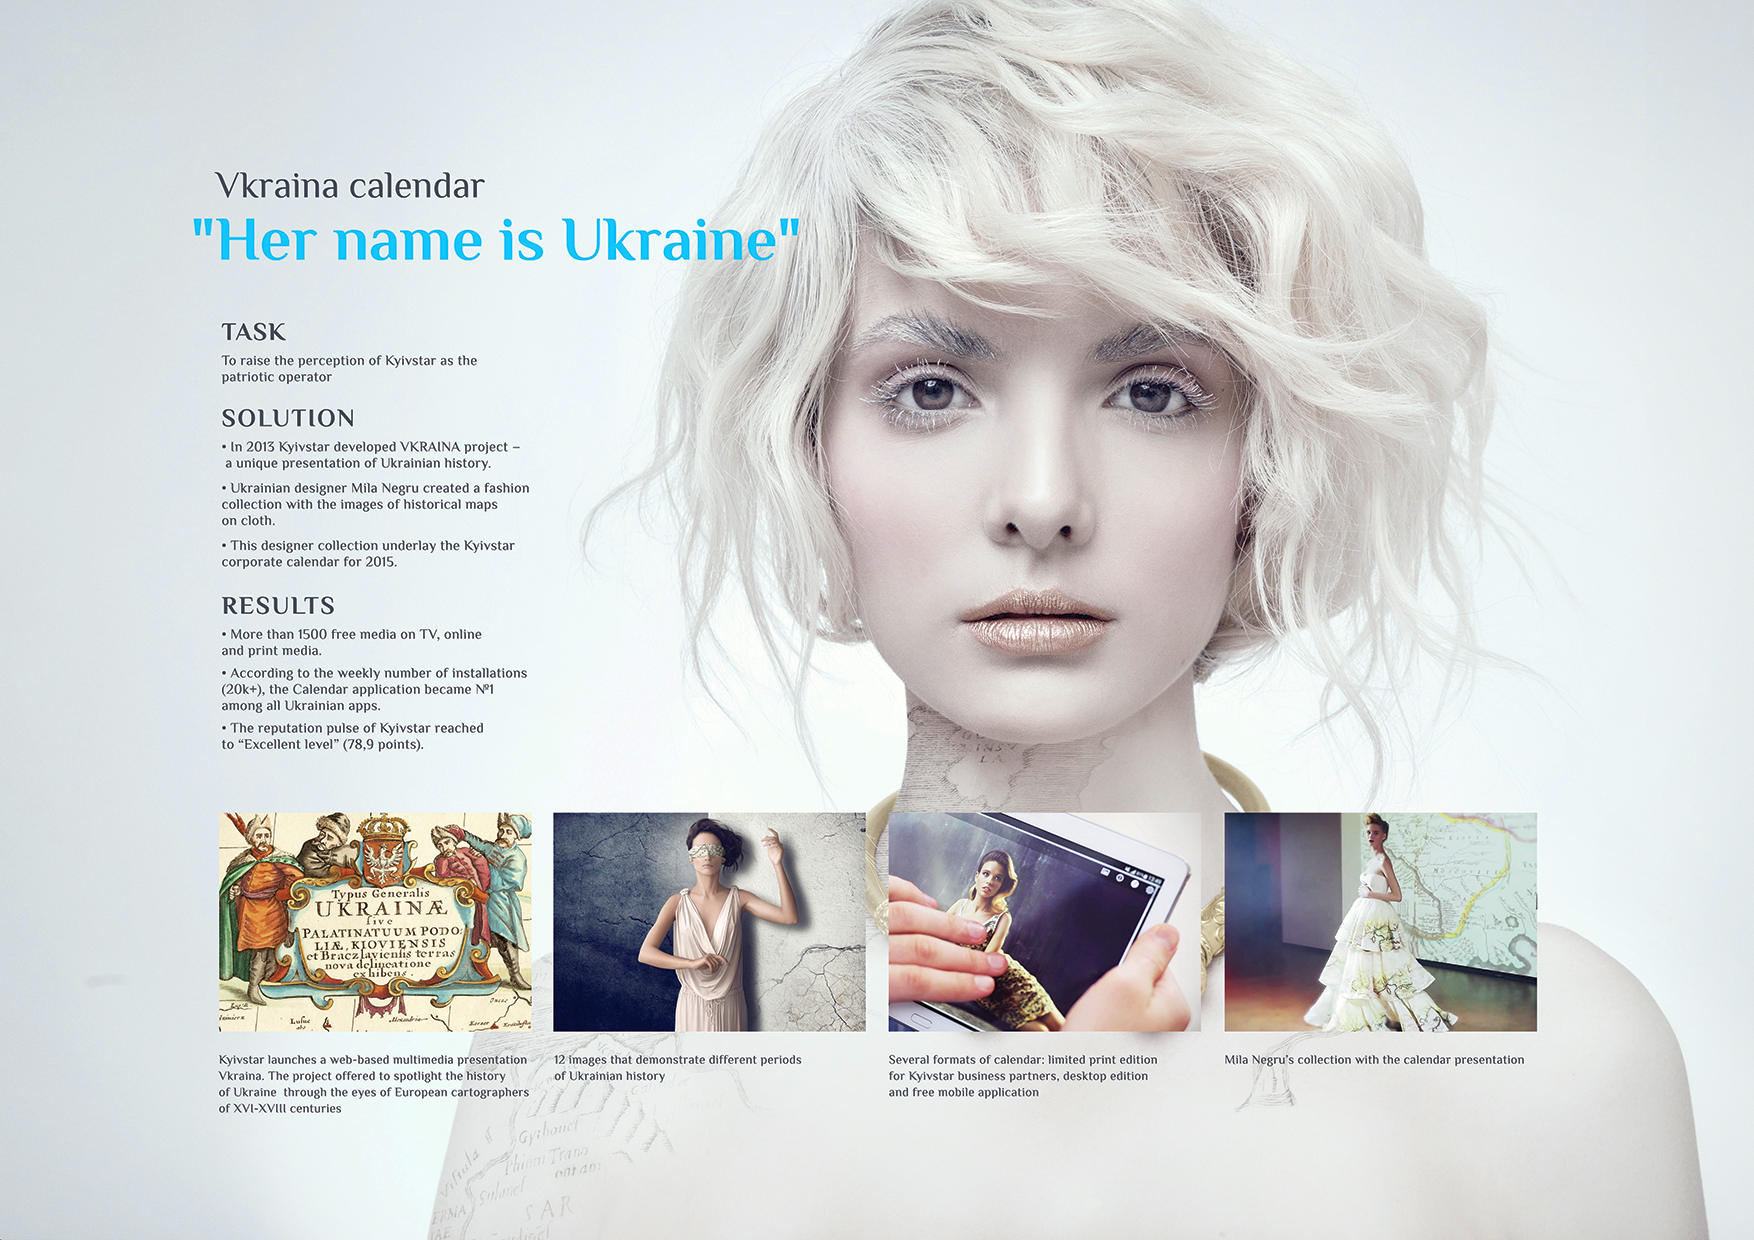 Her name is Ukraine